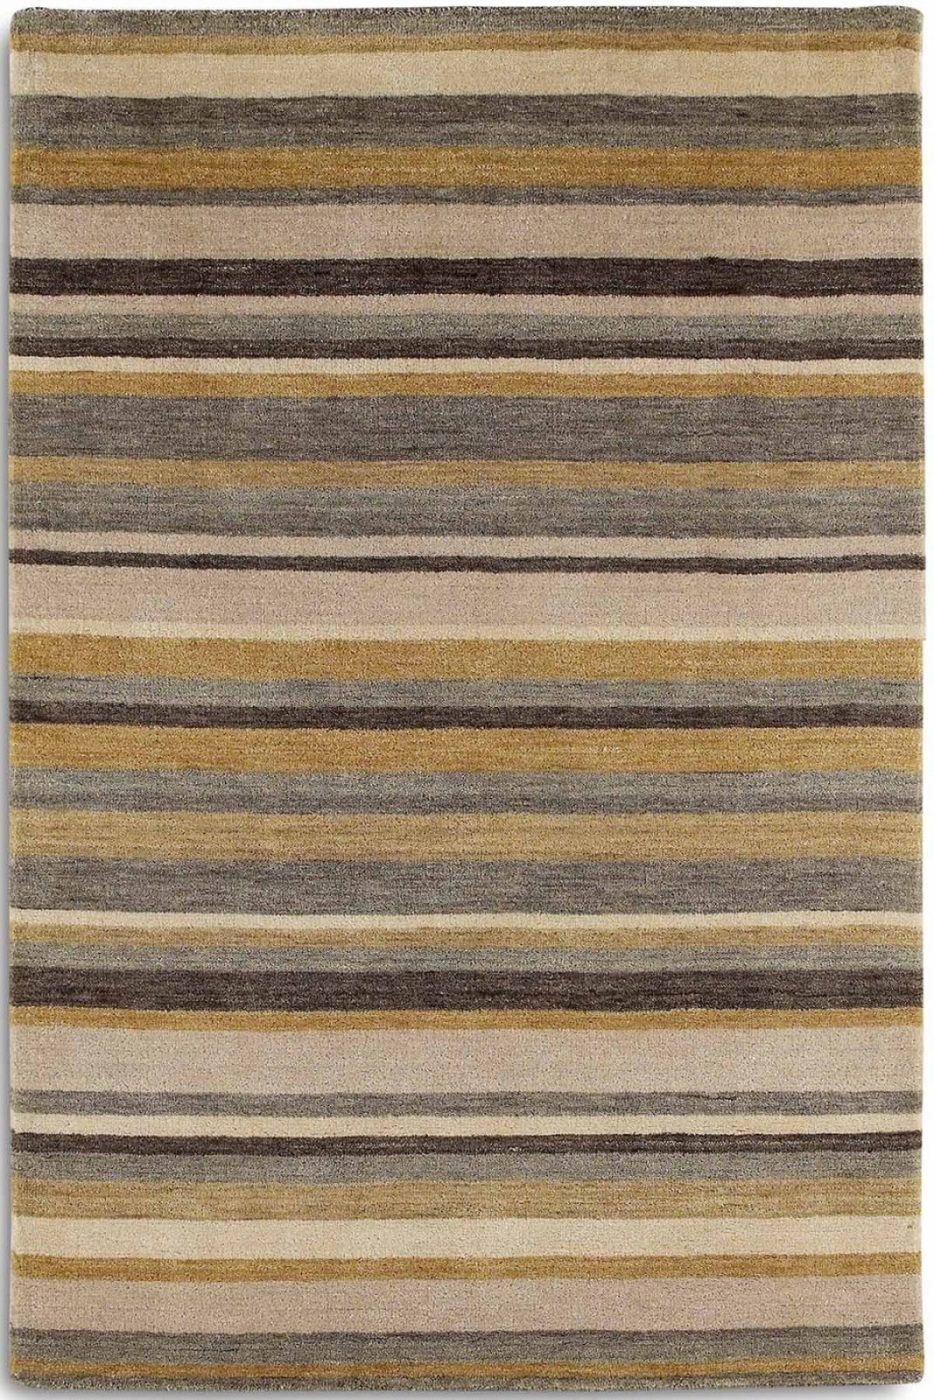 REG02 regatta Plantation Rugs